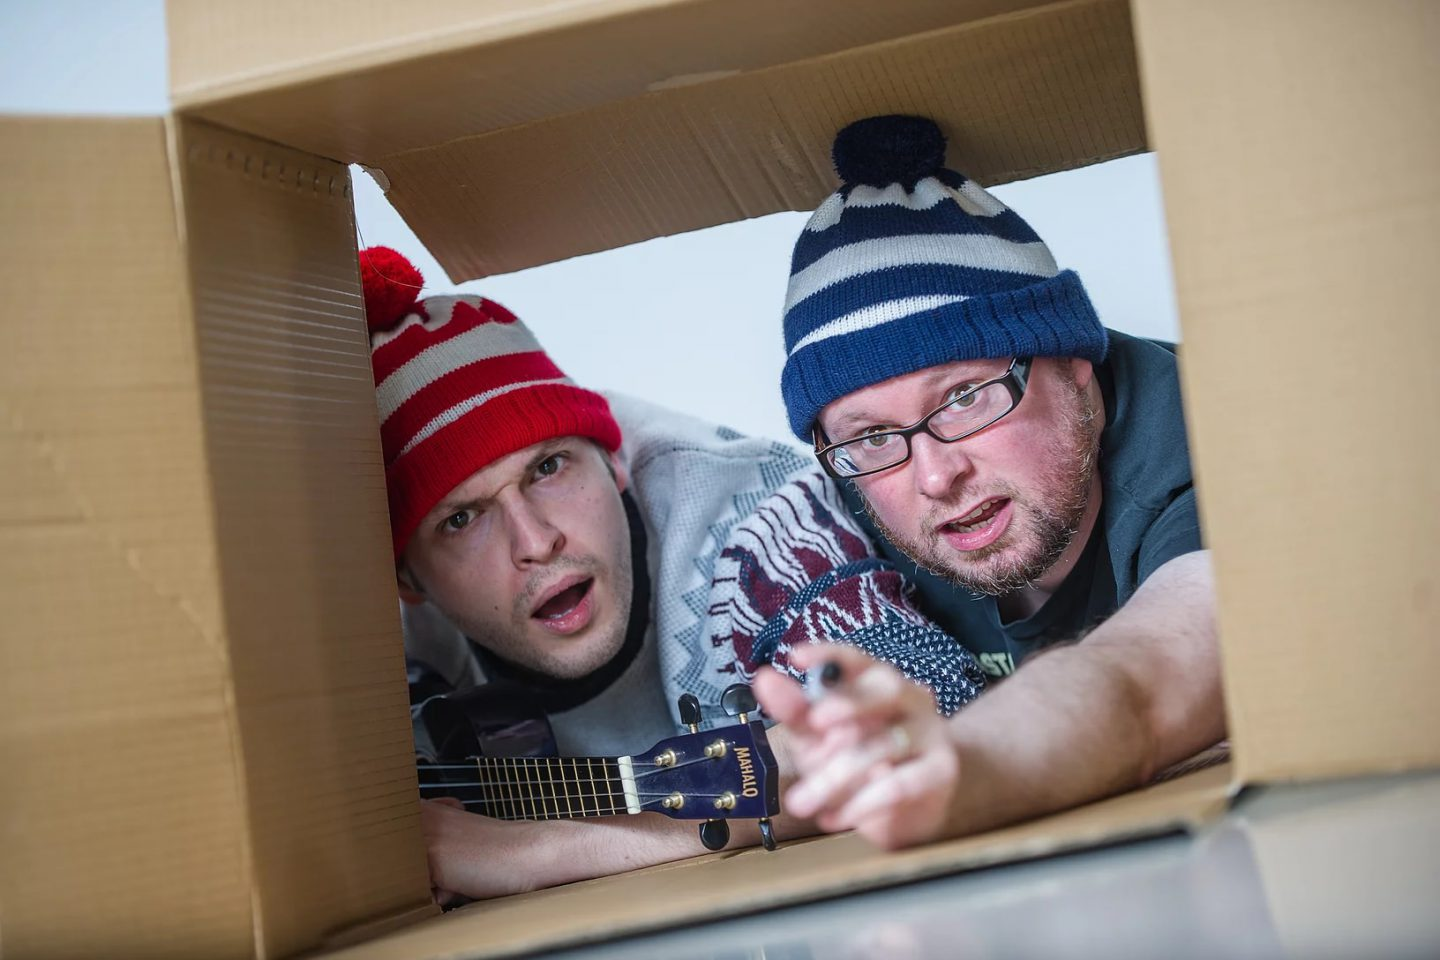 A Boy And His Box - two performers seen through a cardboard box - one is holding a ukulele, the other has a pen in his hand. they both wear bobble hats